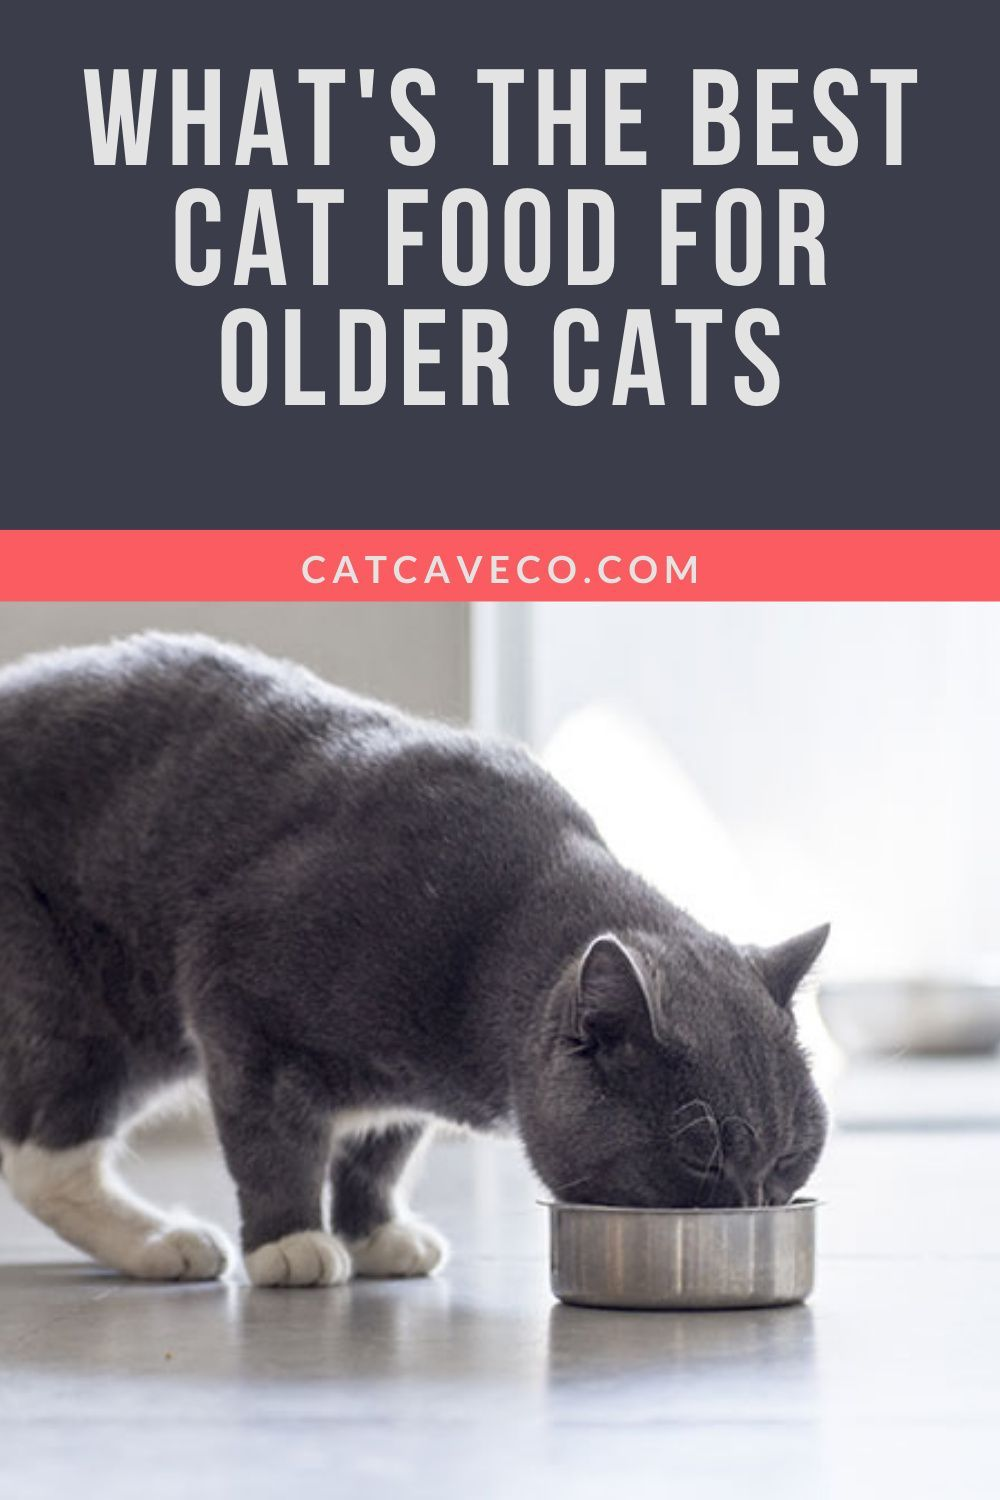 Best Cat Food For Older Cats In 2020 Best Cat Food Cat Food Cool Cats